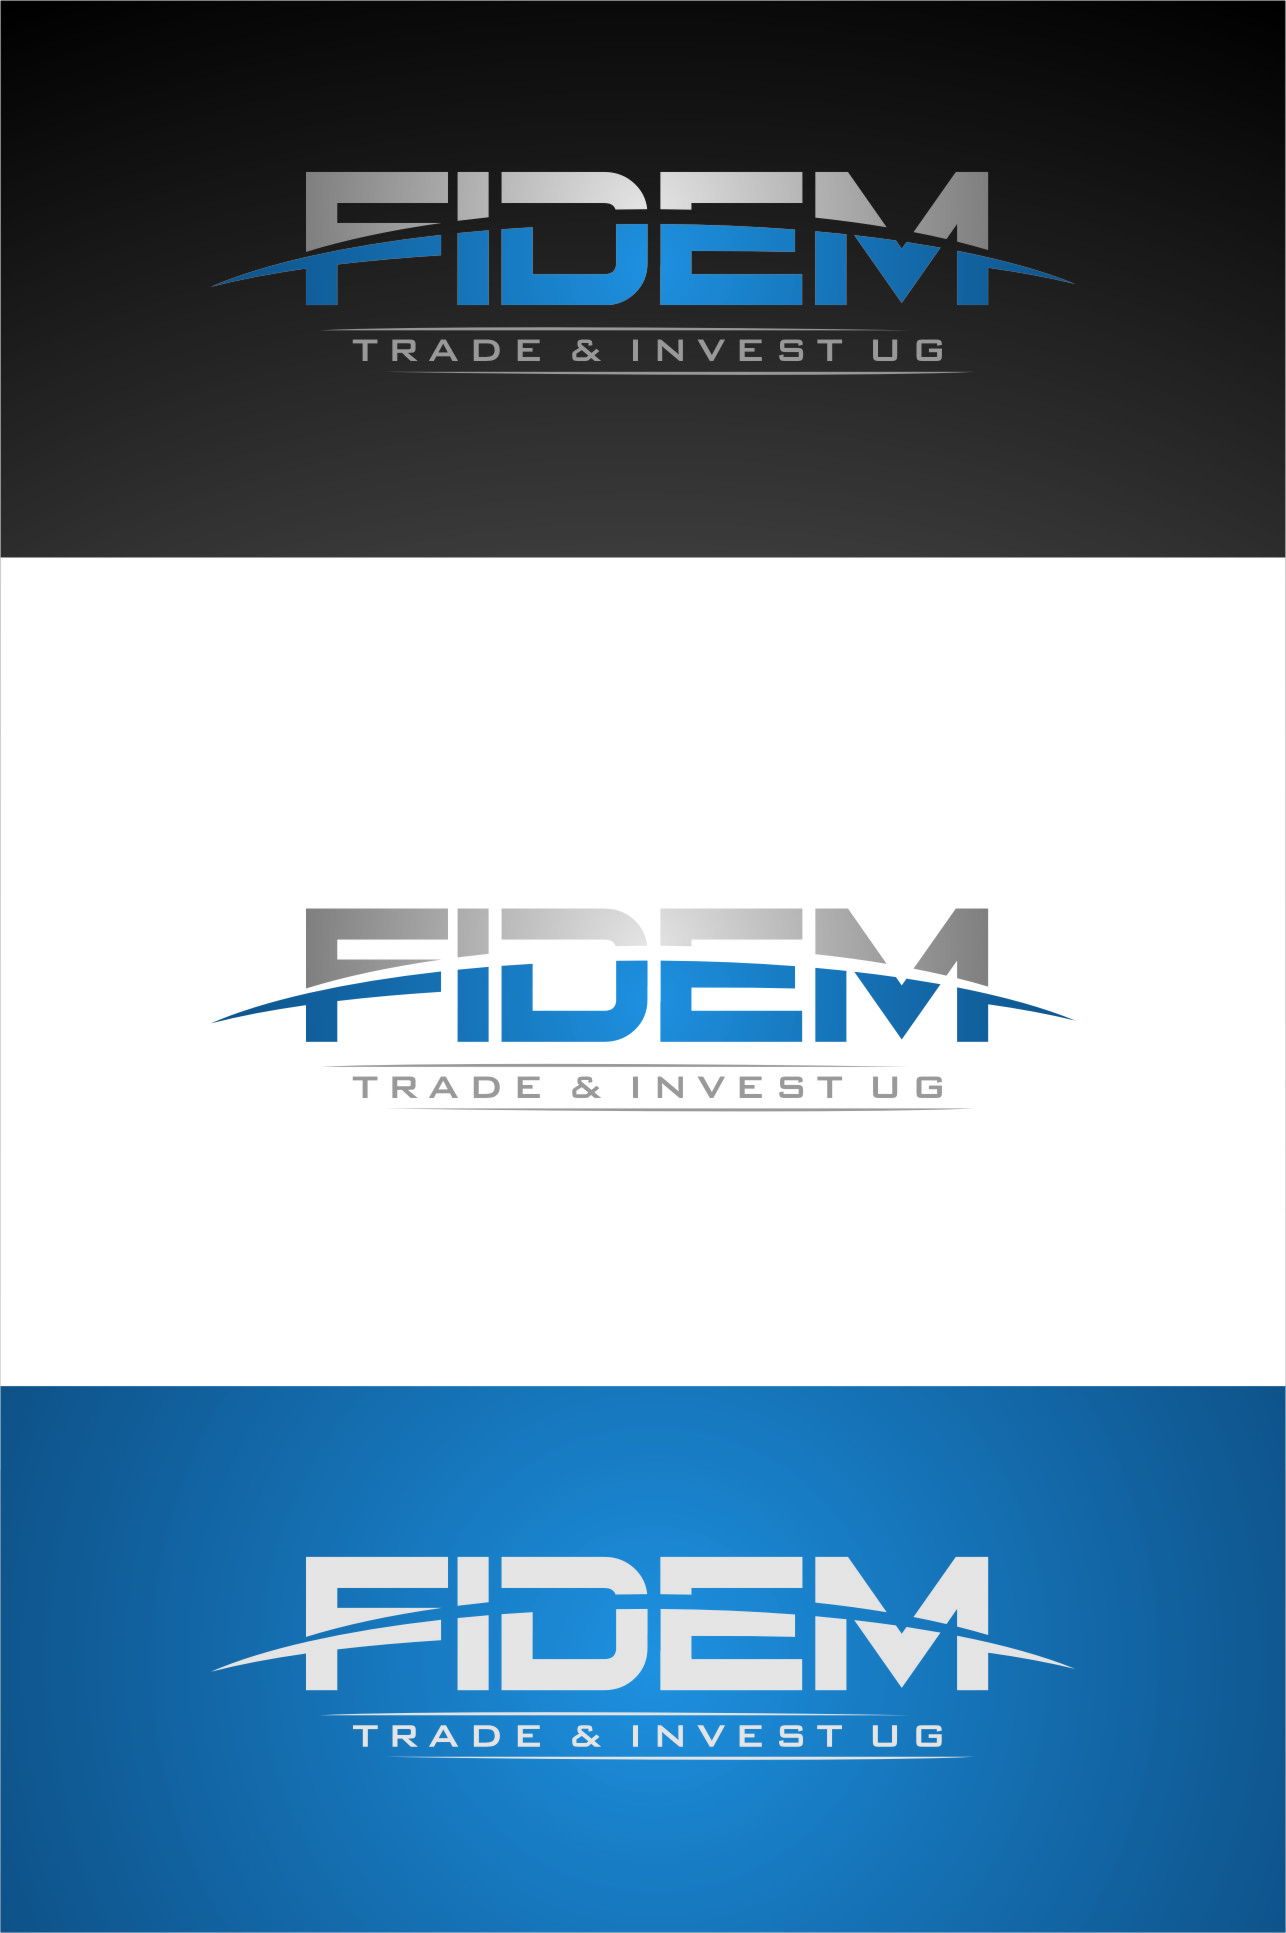 Logo Design by RasYa Muhammad Athaya - Entry No. 361 in the Logo Design Contest Professional Logo Design for FIDEM Trade & Invest UG.